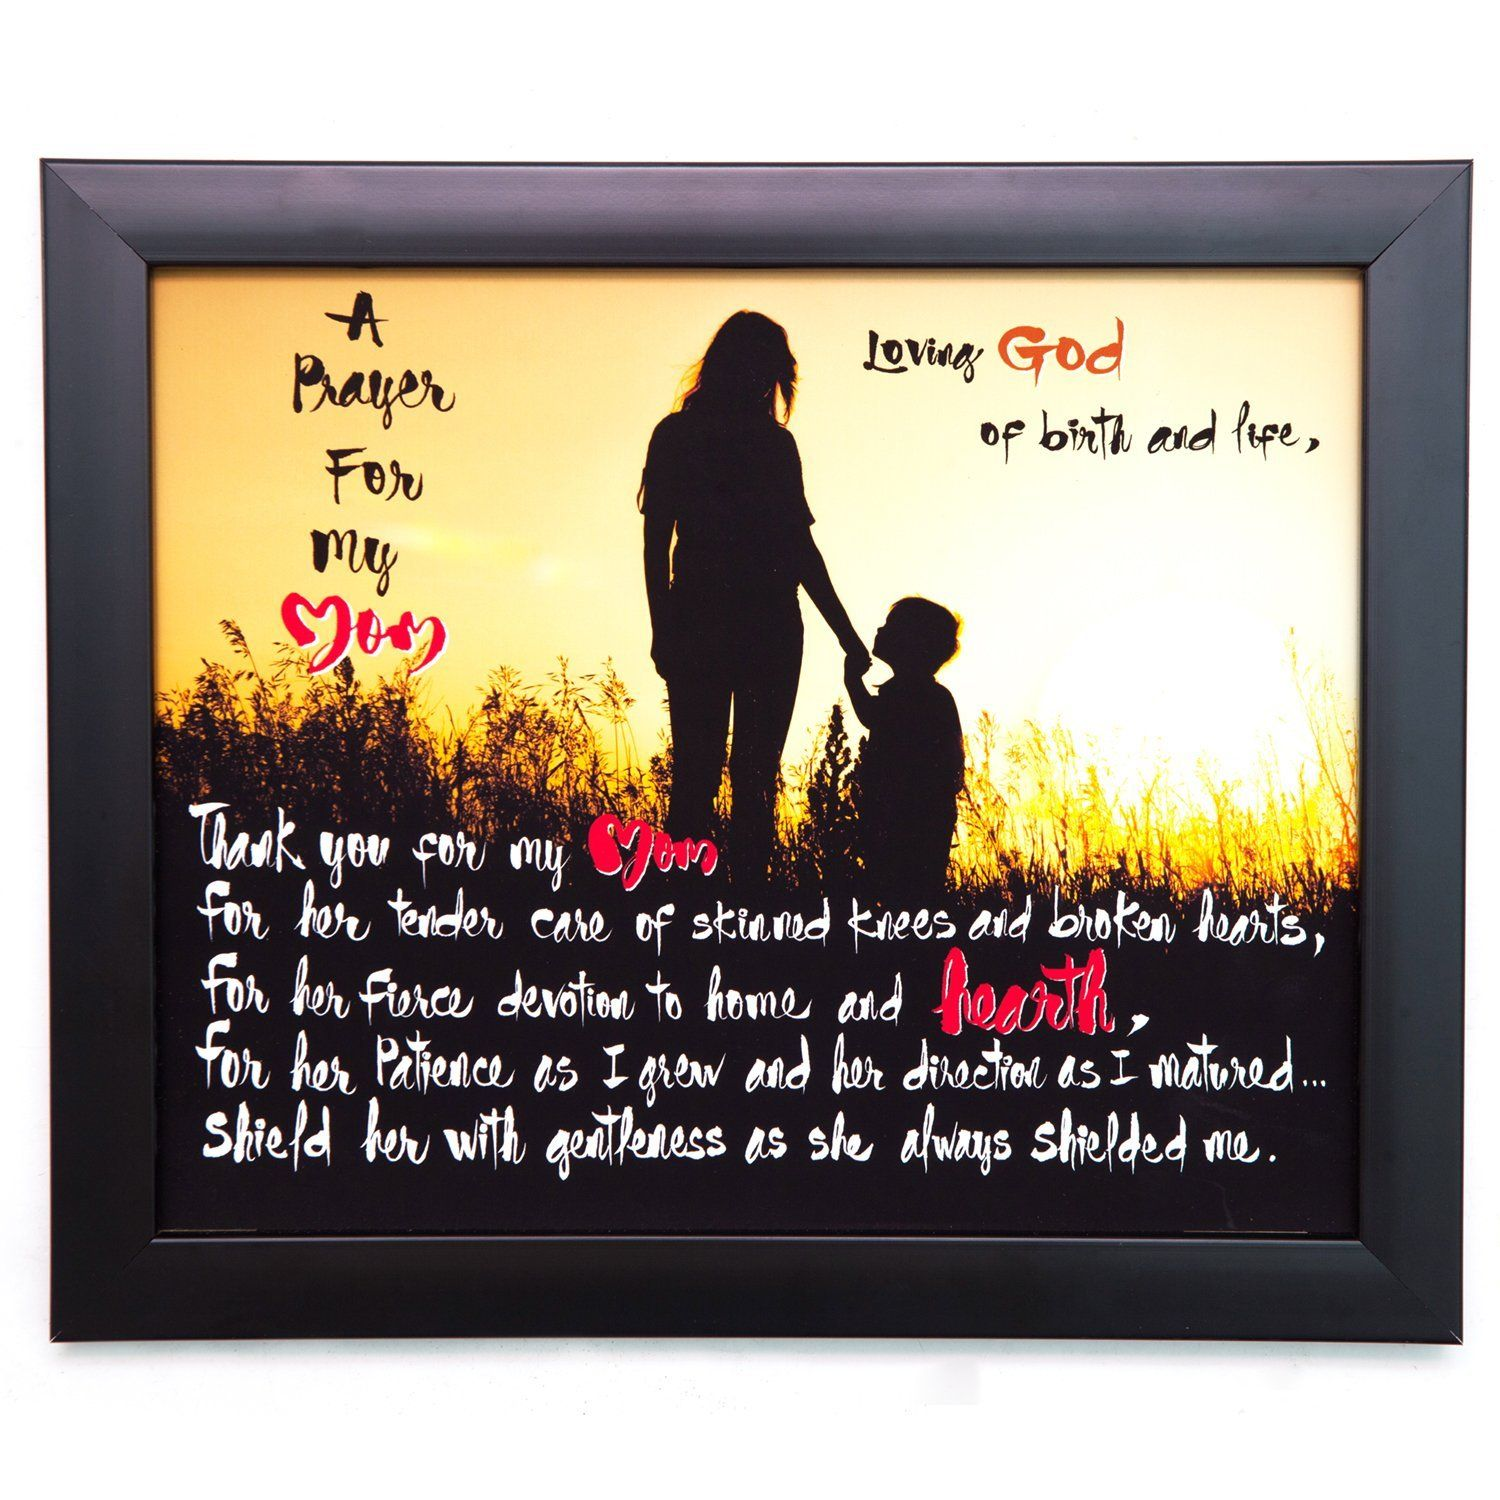 A Prayer For My Mom, 10x12 Wood Wall Art Plaque & Tabletop Frame ...